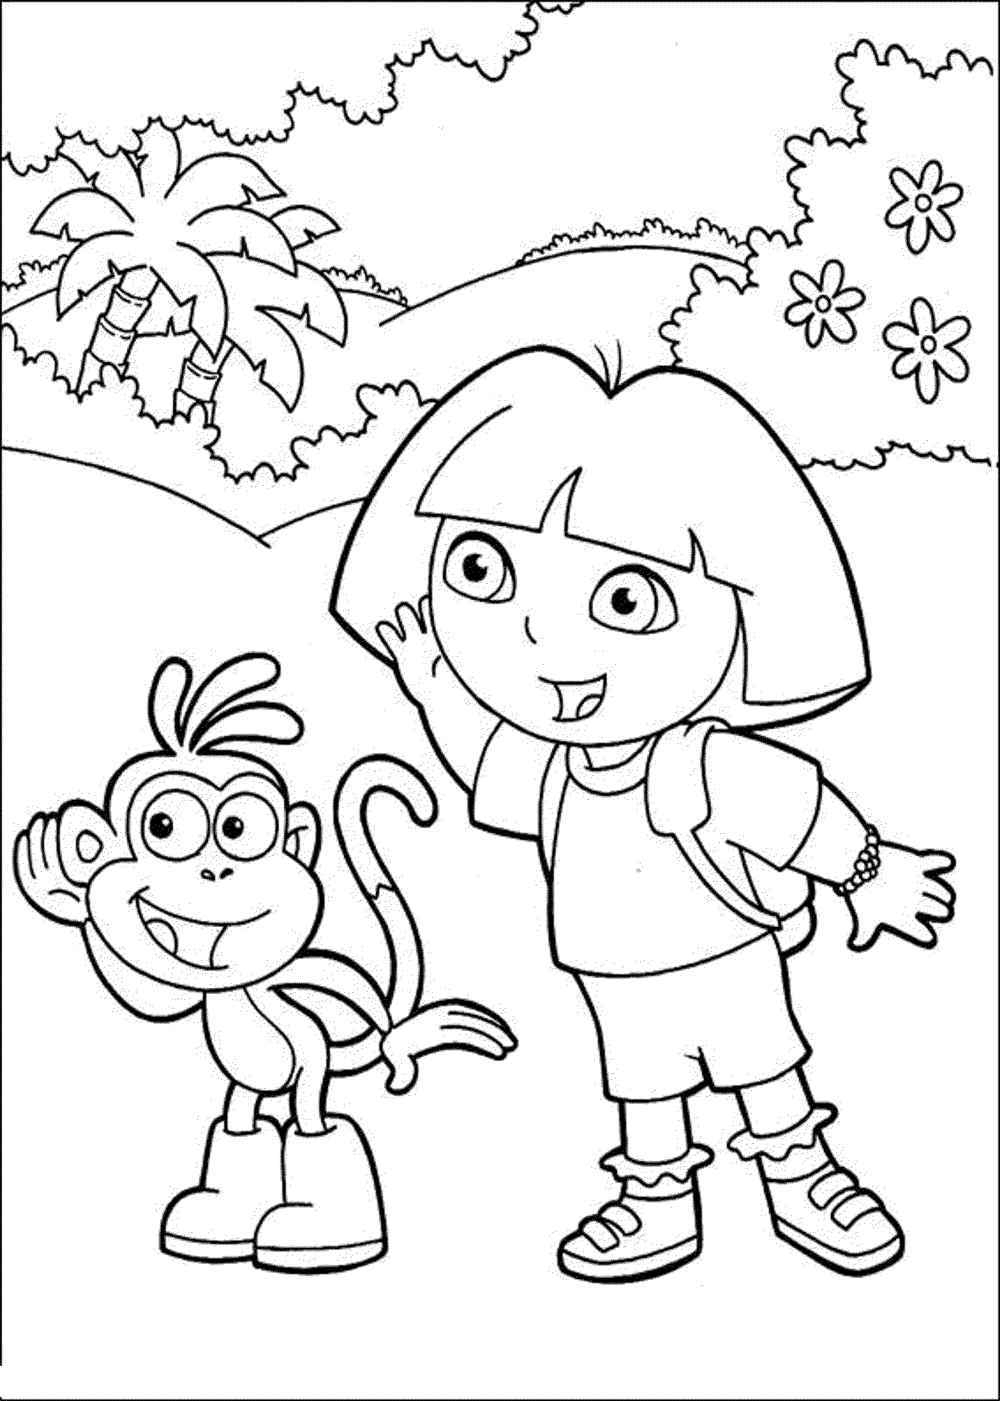 28 Stranger Danger Coloring Pages Gallery - Coloring Sheets